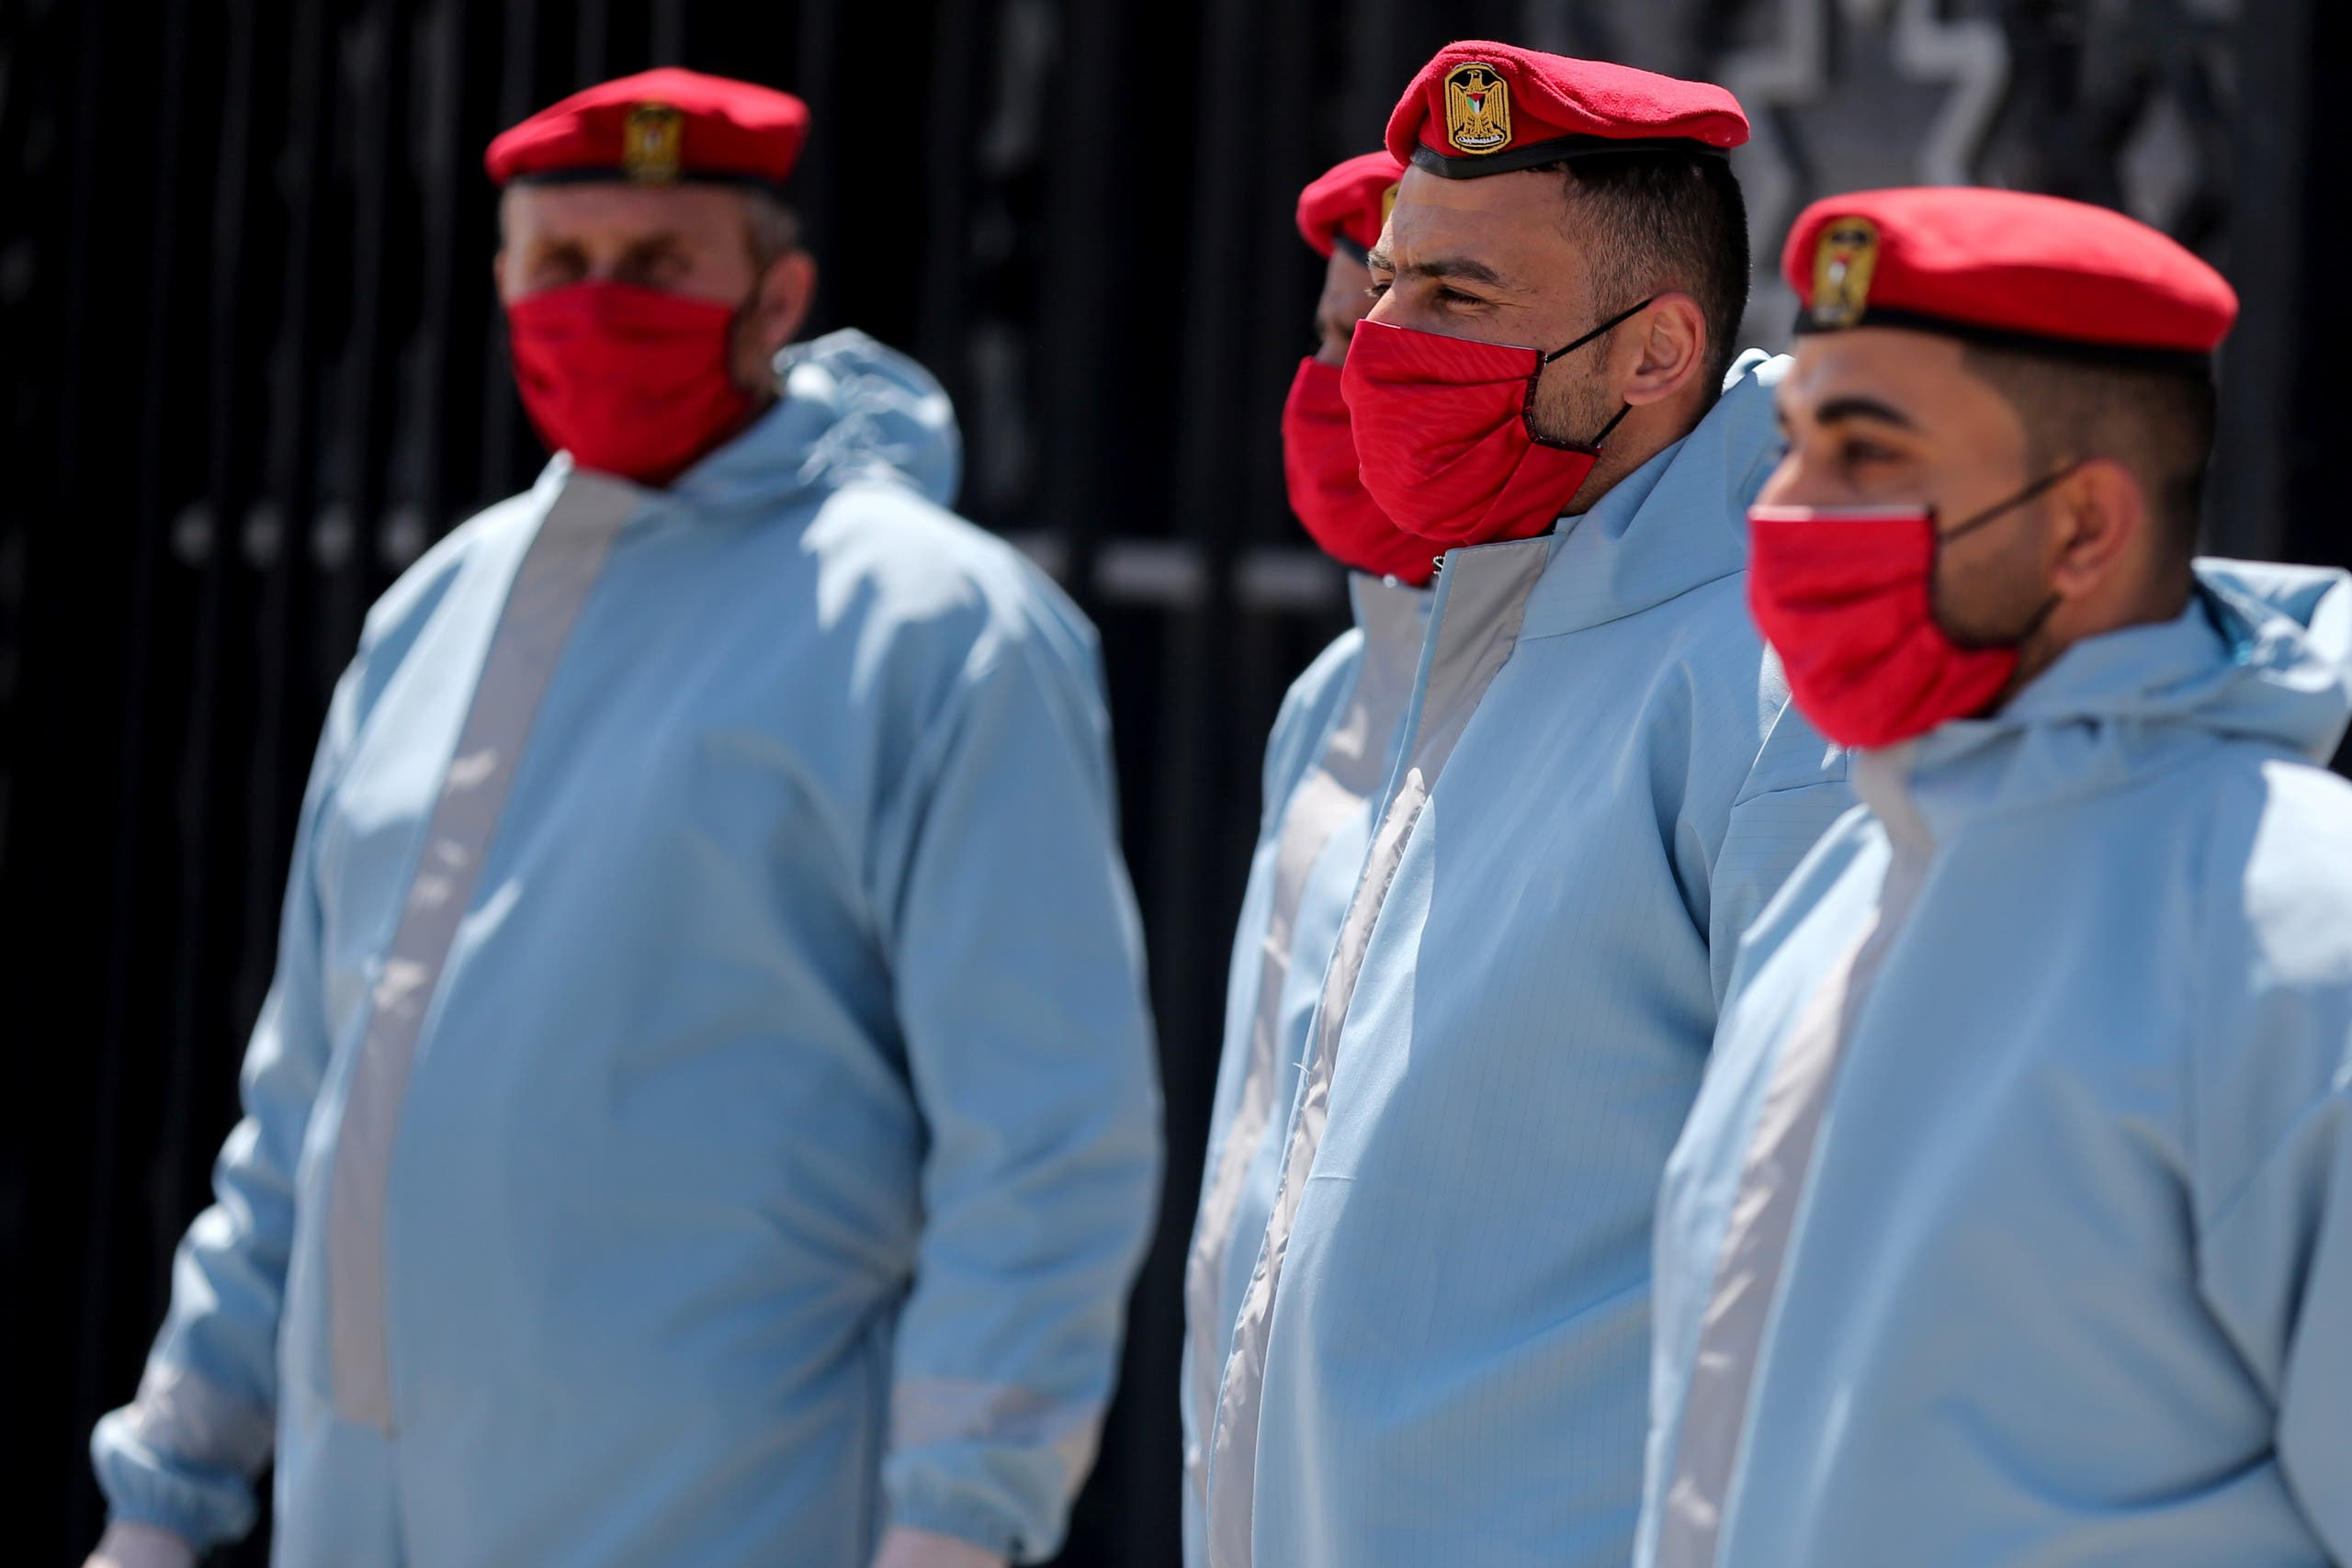 Members of Palestinian Hamas security forces wear protective gear as precaution against the coronavirus at Rafah border crossing in the southern Gaza Strip on April 13, 2020. (Reuters)